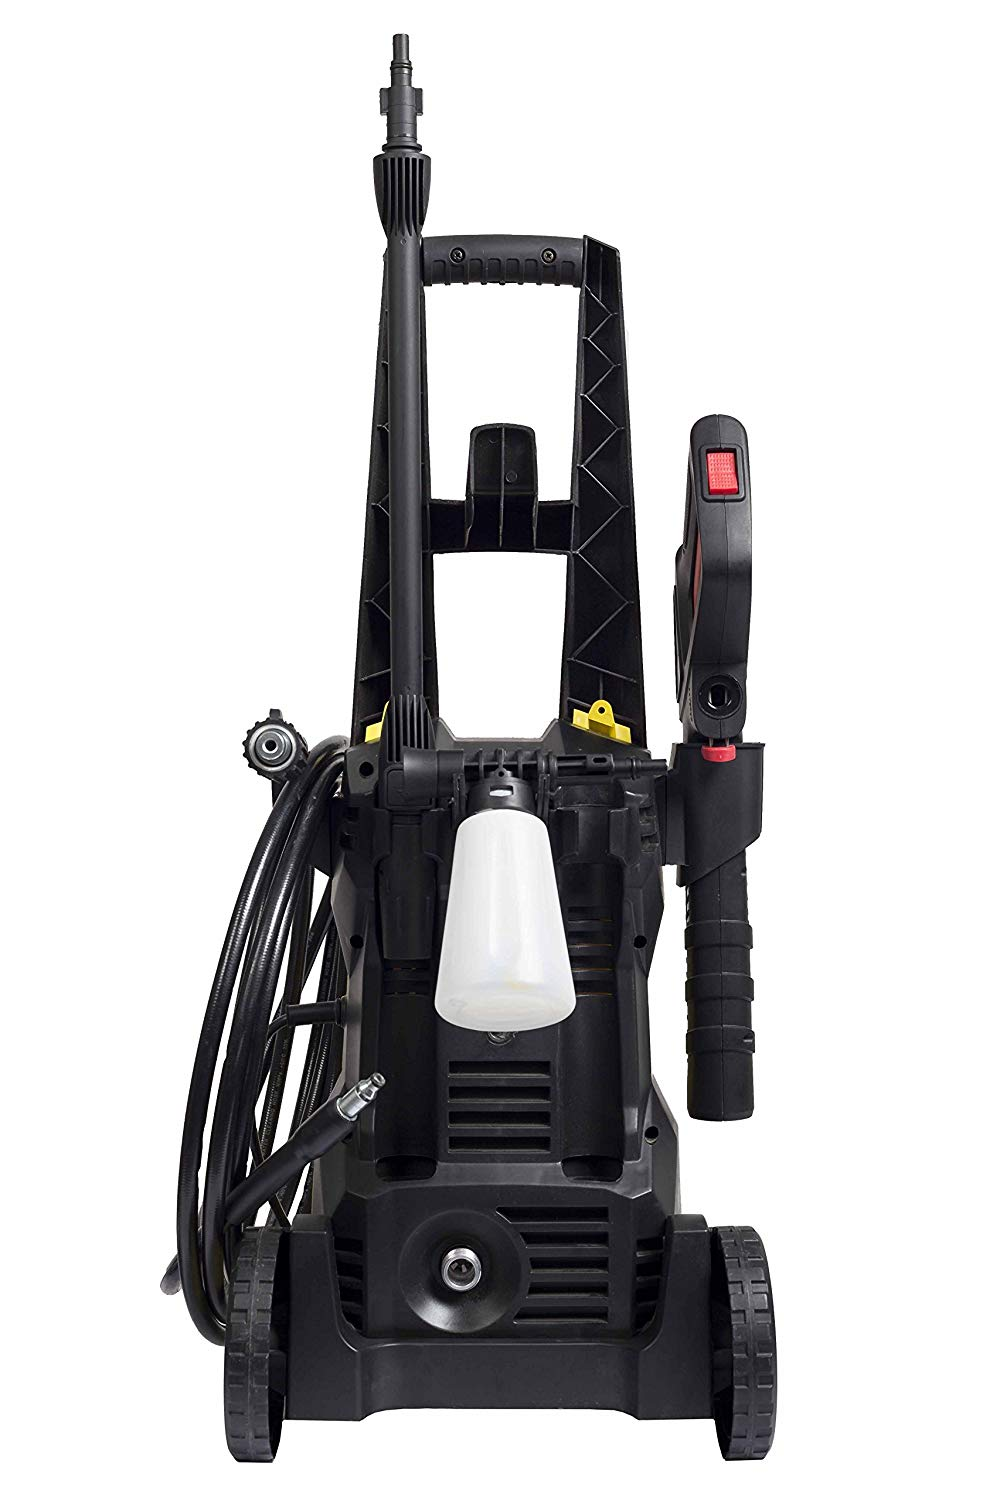 ResQtech 1700-Watt 135 Bar- Best Pressure Washer for Cars and AC in India 1